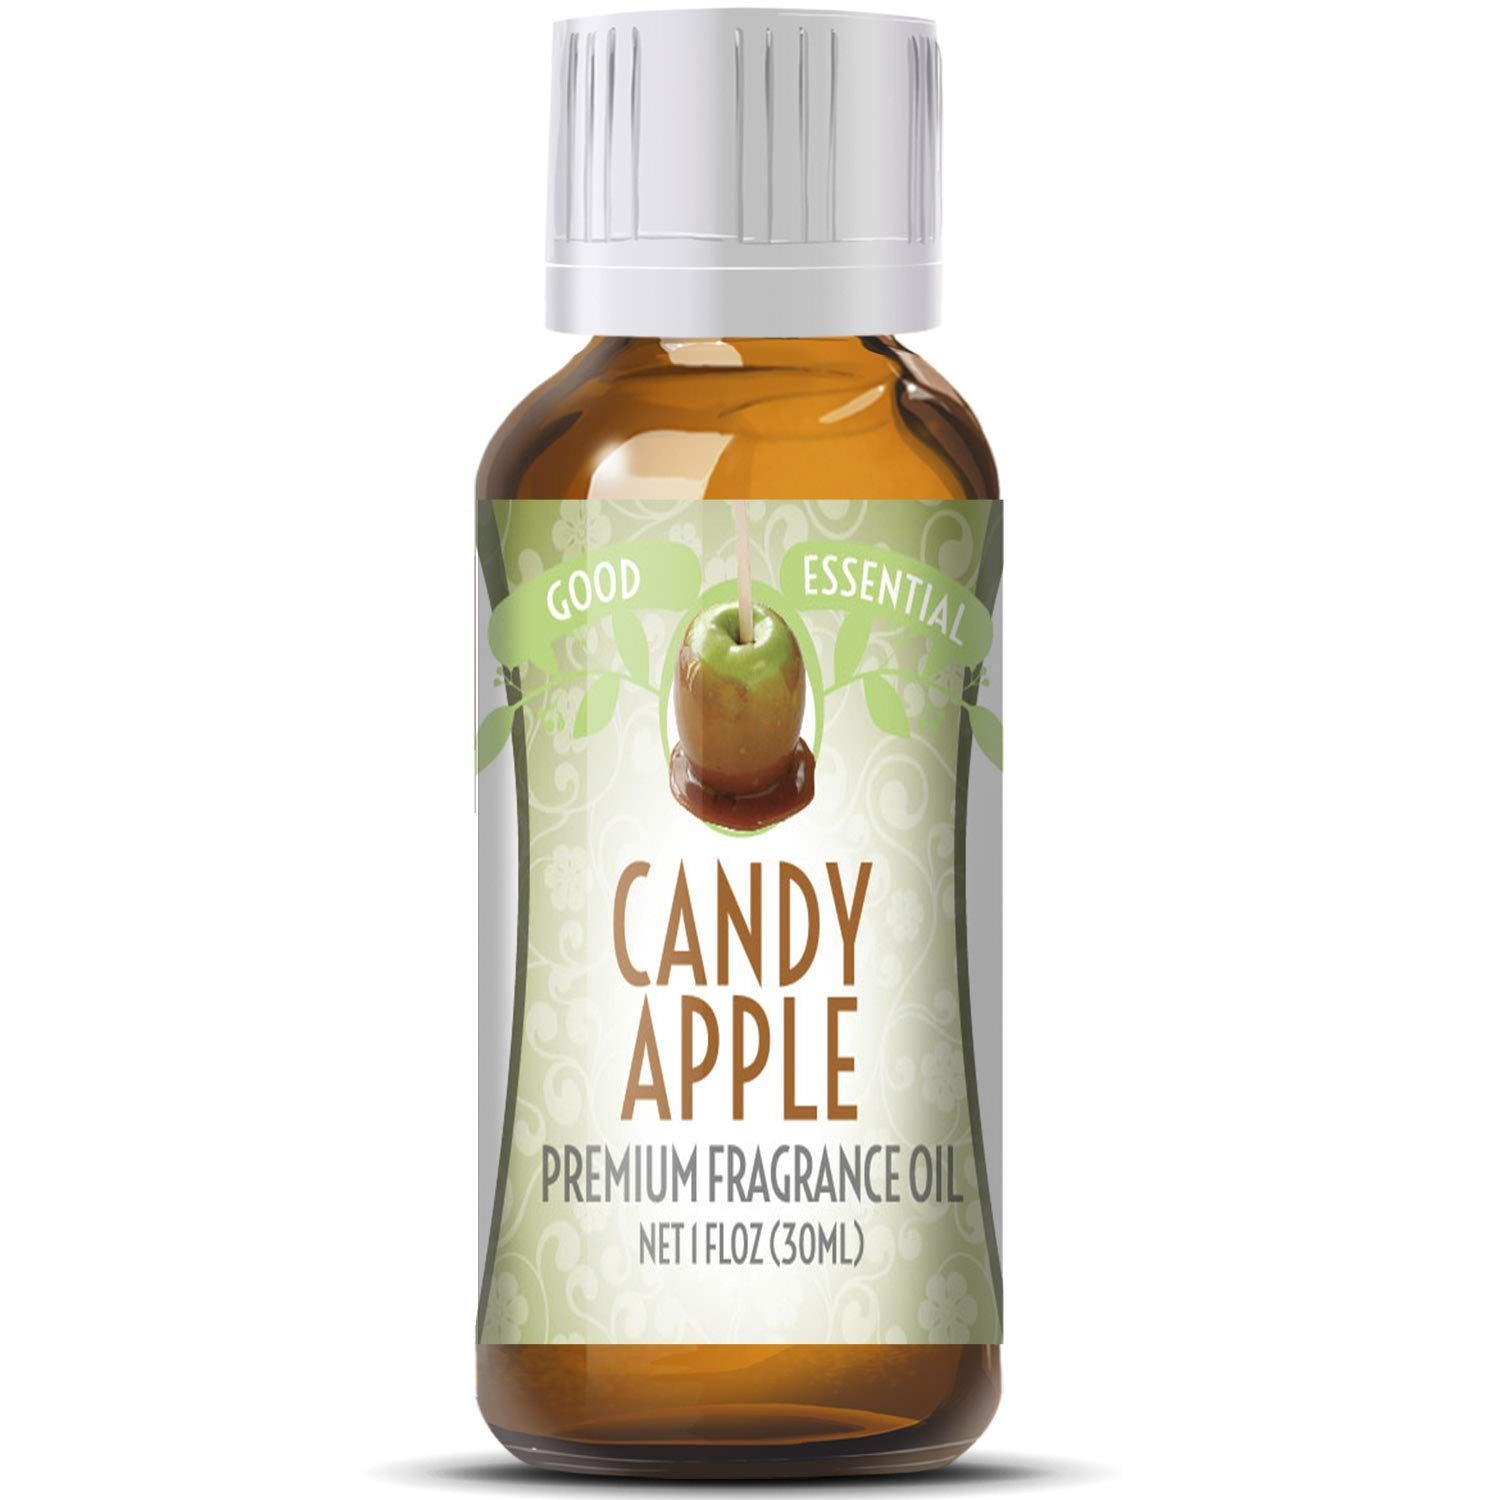 Candy Apple Scented Oil by Good Essential (Huge 1oz Bottle - Premium Grade Fragrance Oil) - Perfect for Aromatherapy, Soaps, Candles, Slime, Lotions, and More!